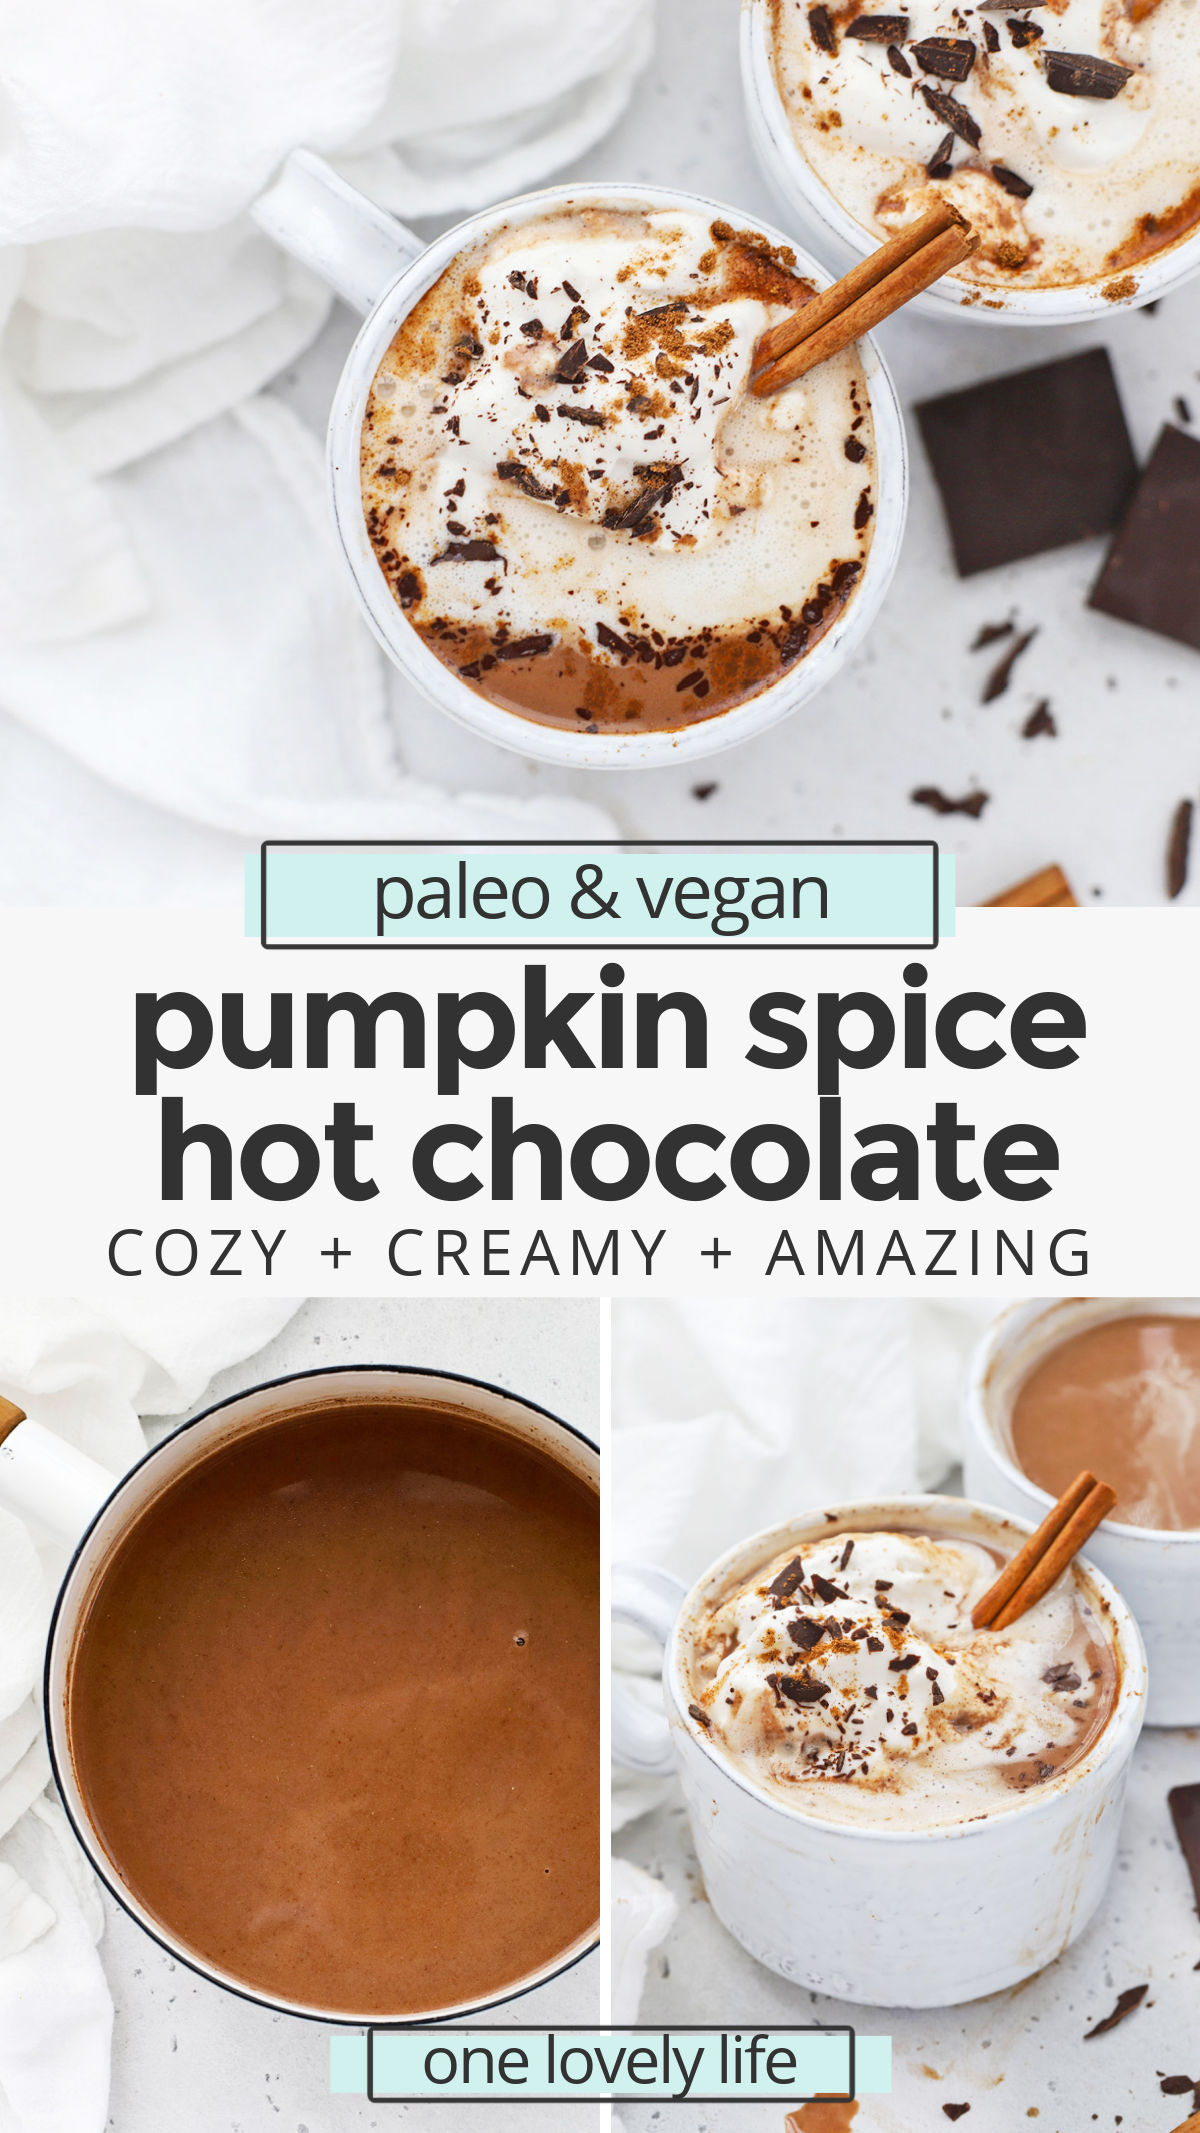 Vegan Pumpkin Spice Hot Chocolate - This dairy-free pumpkin spice hot chocolate is the perfect drink to cozy up with during cold weather. You'll love the rich, chocolatey flavor and warm kiss of spice. (Paleo-Friendly) // Pumpkin Spice Hot Cocoa Recipe // Vegan Hot Chocolate Recipe // Dairy Free Hot Chocolate Recipe // Pumpkin Hot Chocolate // Cinnamon Hot Chocolate #hotchocolate #hotcocoa #pumpkinspice #healthypumpkin #vegetarian #vegan #dairyfree #paleo